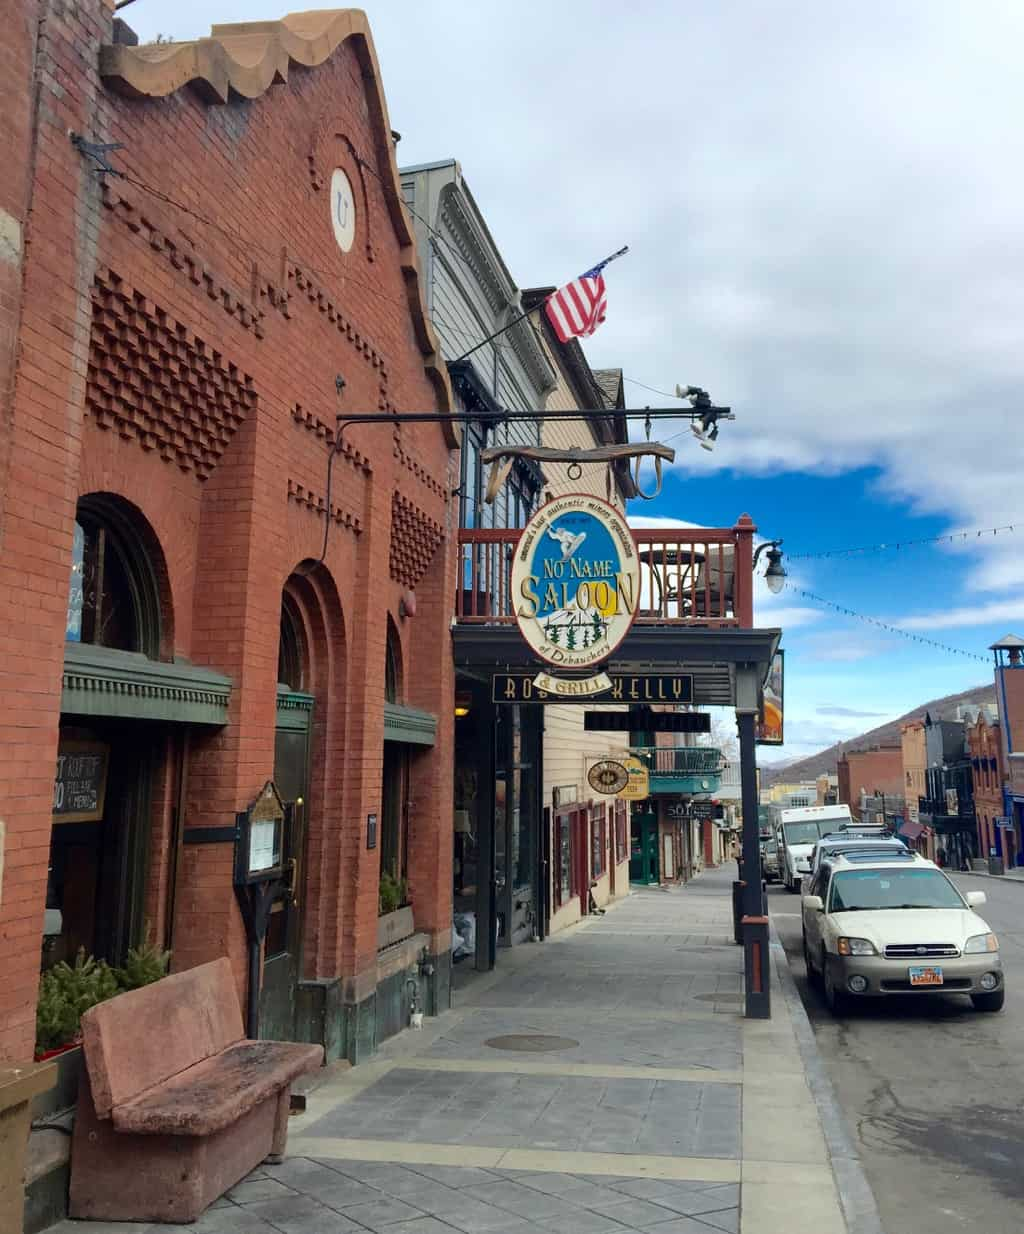 Things to do in Park City, ski in ski out park city, Park City Utah things to do, What to do in Park City, #ParkCity #Utah #sk